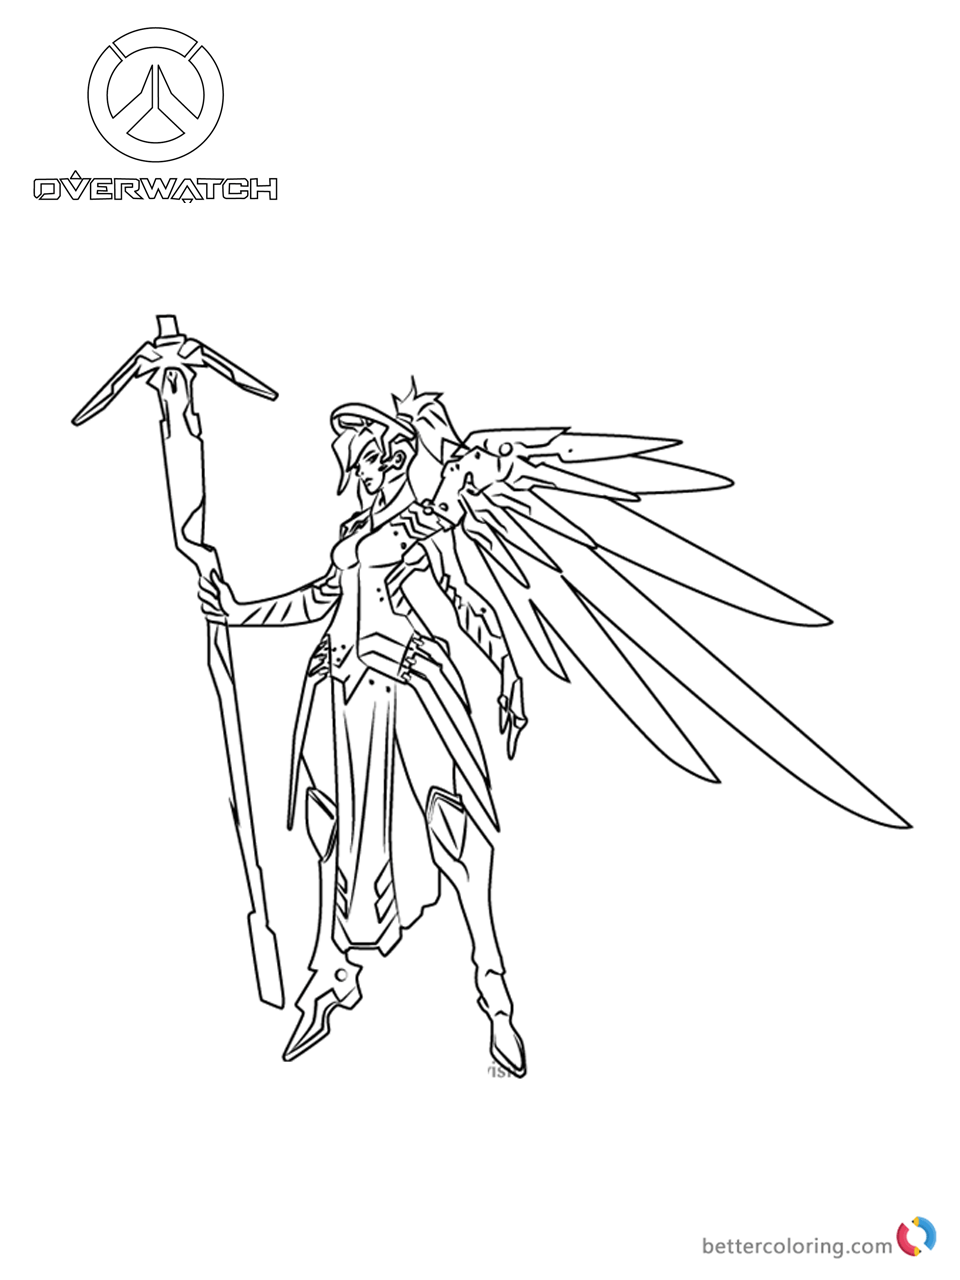 Mercy From Overwatch Coloring Pages Free Printable